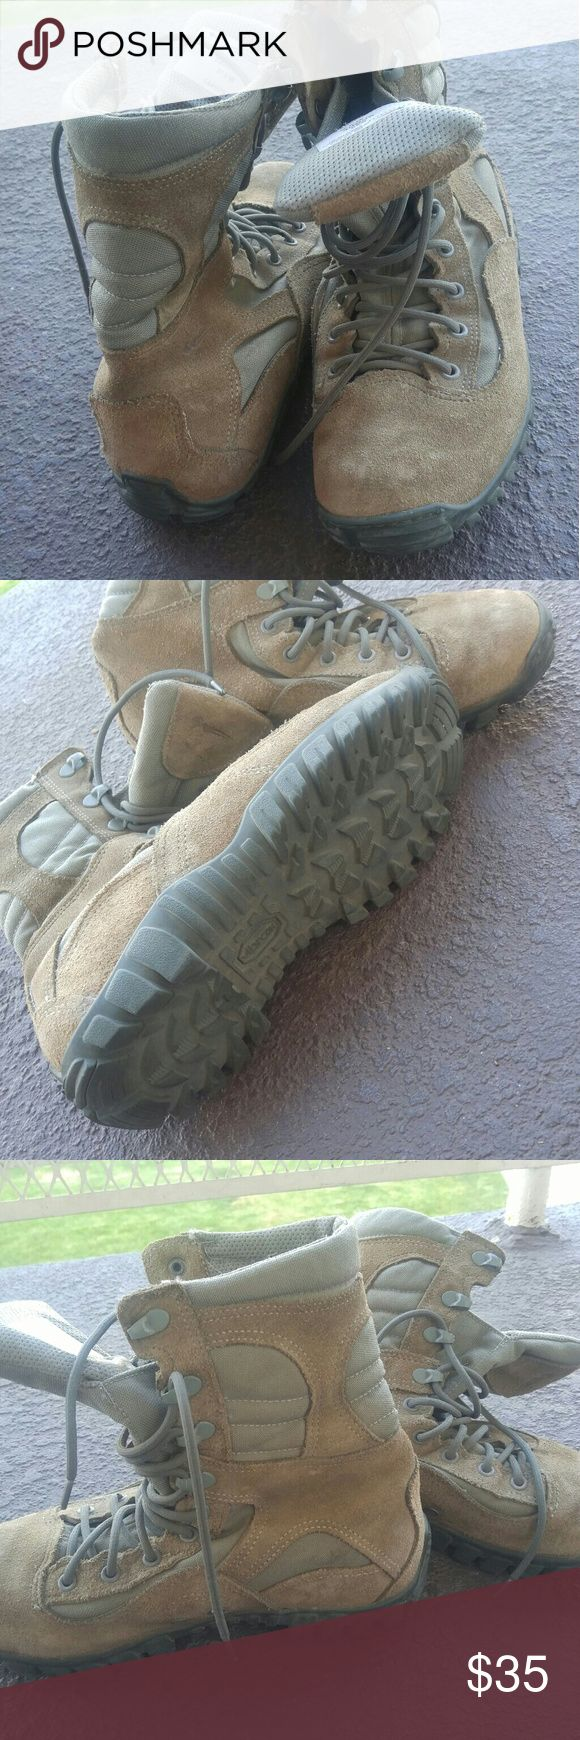 Air Force Military Boot Standard Issue Standard issue hiking boots purchased from the Andrews Air force base with my grandfather, unfortunately I got the wrong size and they pinch my toes. They've seen very little action, and the tread/sole is still in excellent condition. Size 7 Women's.  Excellent protective hiking boot for all seasons, decently water protective and the best part-- they lace fairly high so they protect your ankles while hiking and climbing. Belleville Shoes